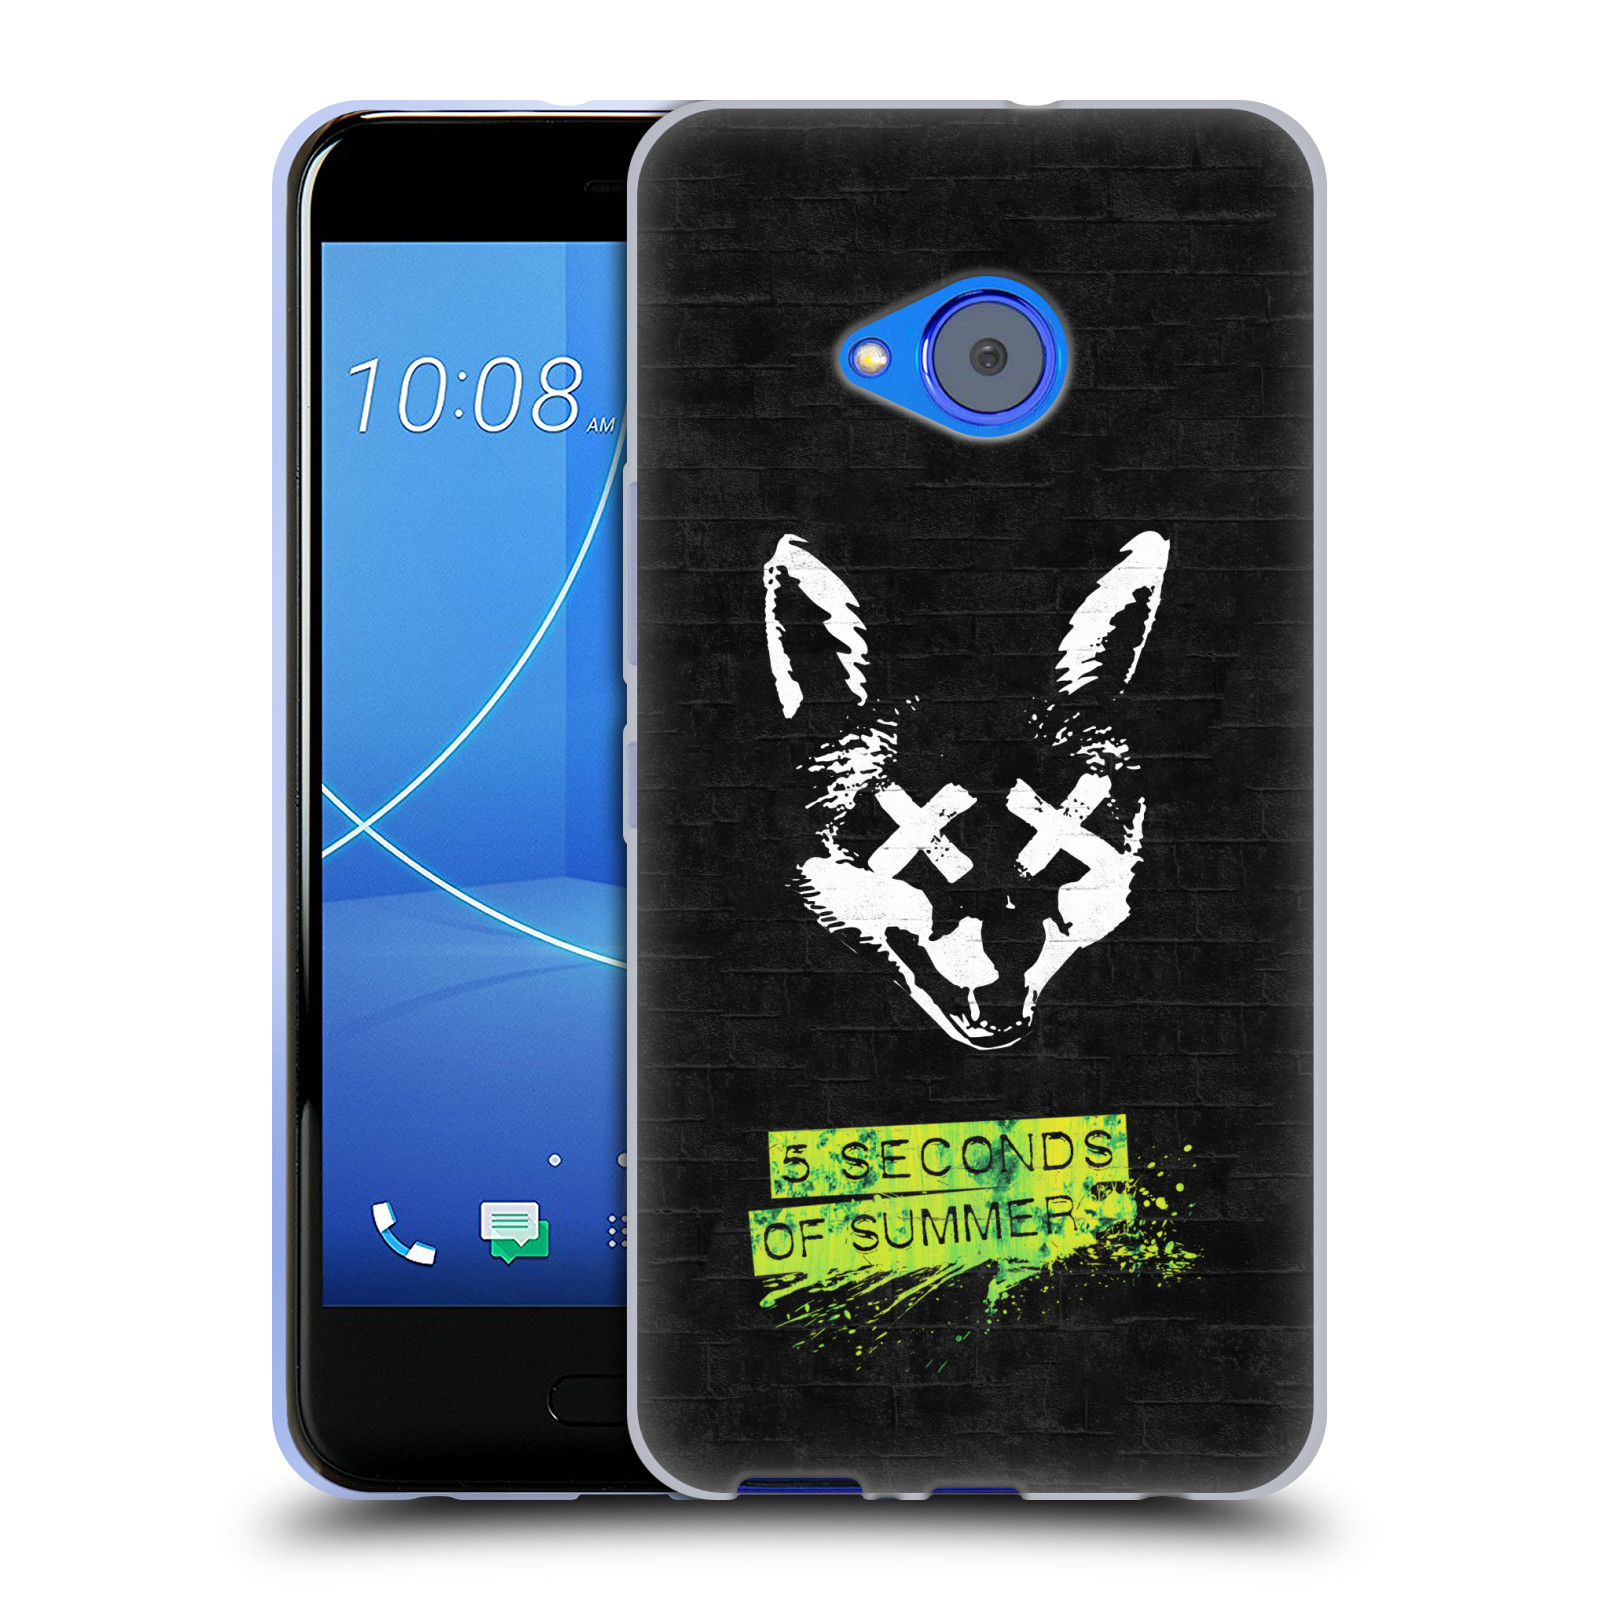 Silikonové pouzdro na mobil HTC U11 Life - Head Case - 5 Seconds of Summer - Fox